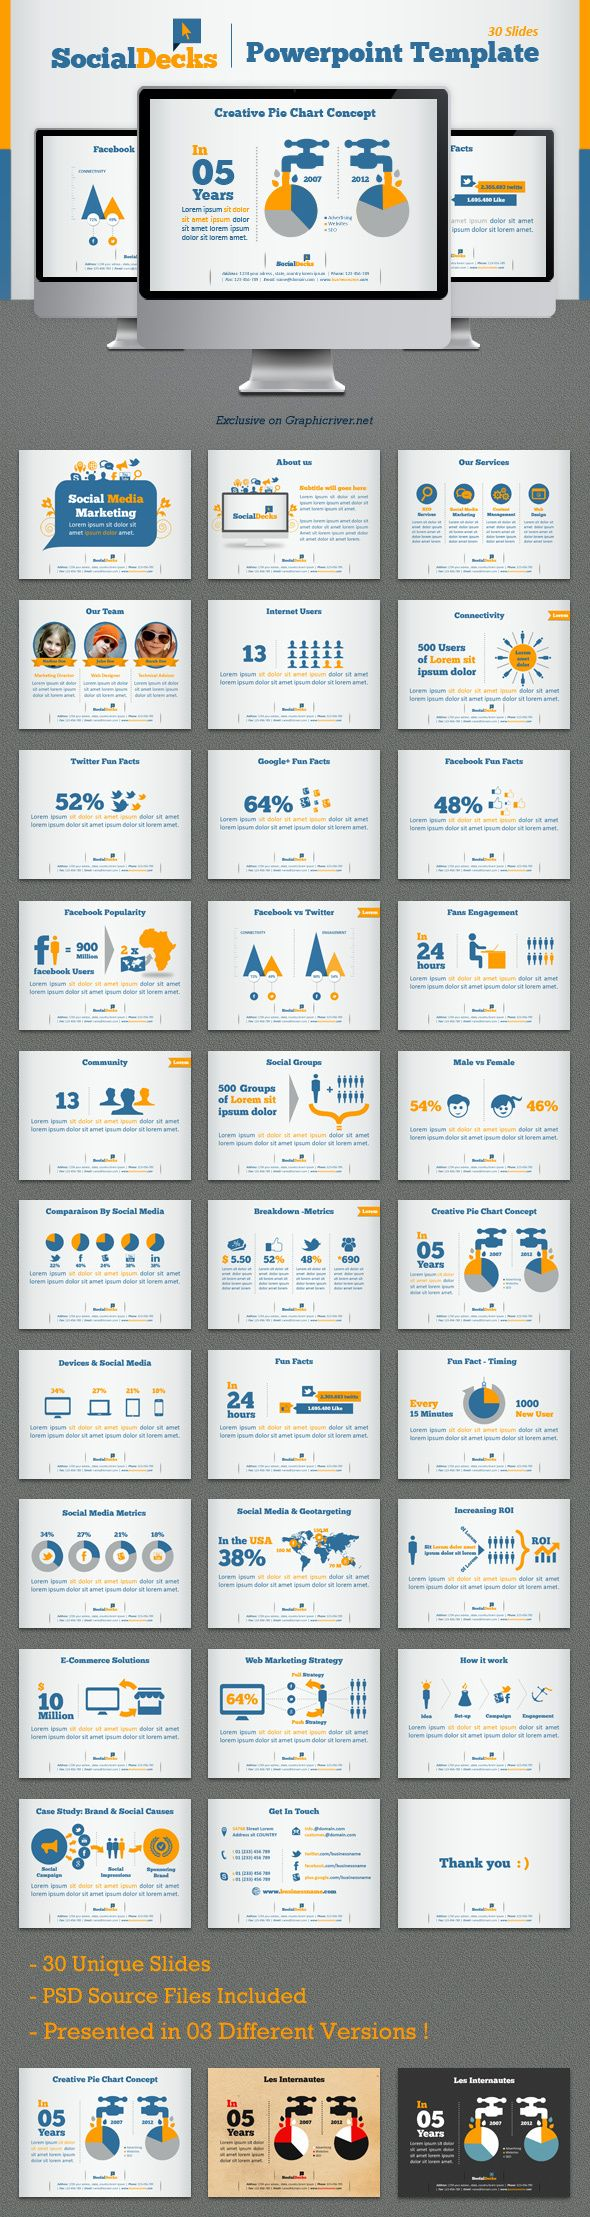 SocialDecks Powerpoint Template by kh2838 Studio, via Behance